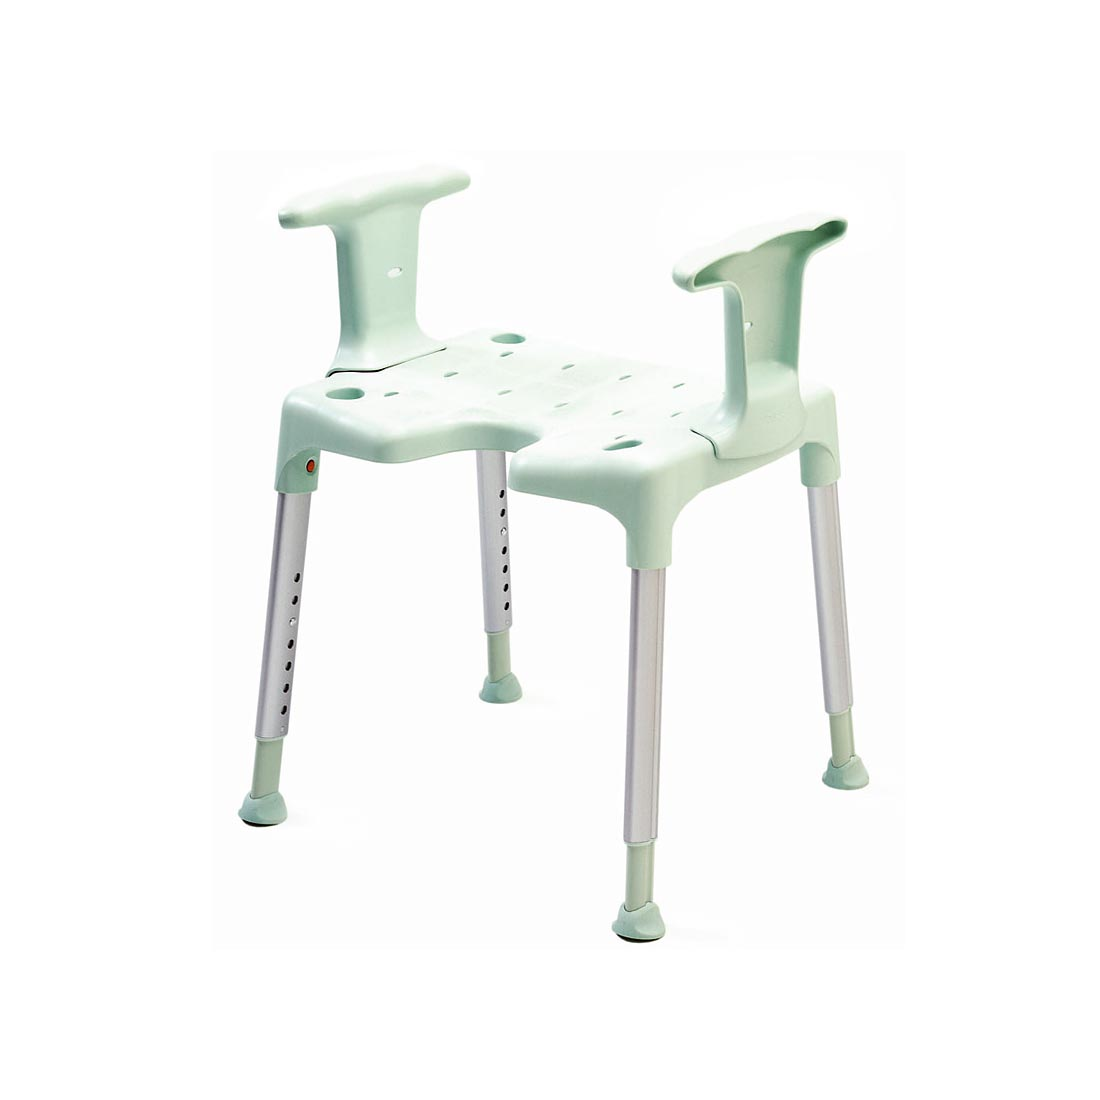 Astounding Shower Stool With Sides Support Etac Download Free Architecture Designs Scobabritishbridgeorg